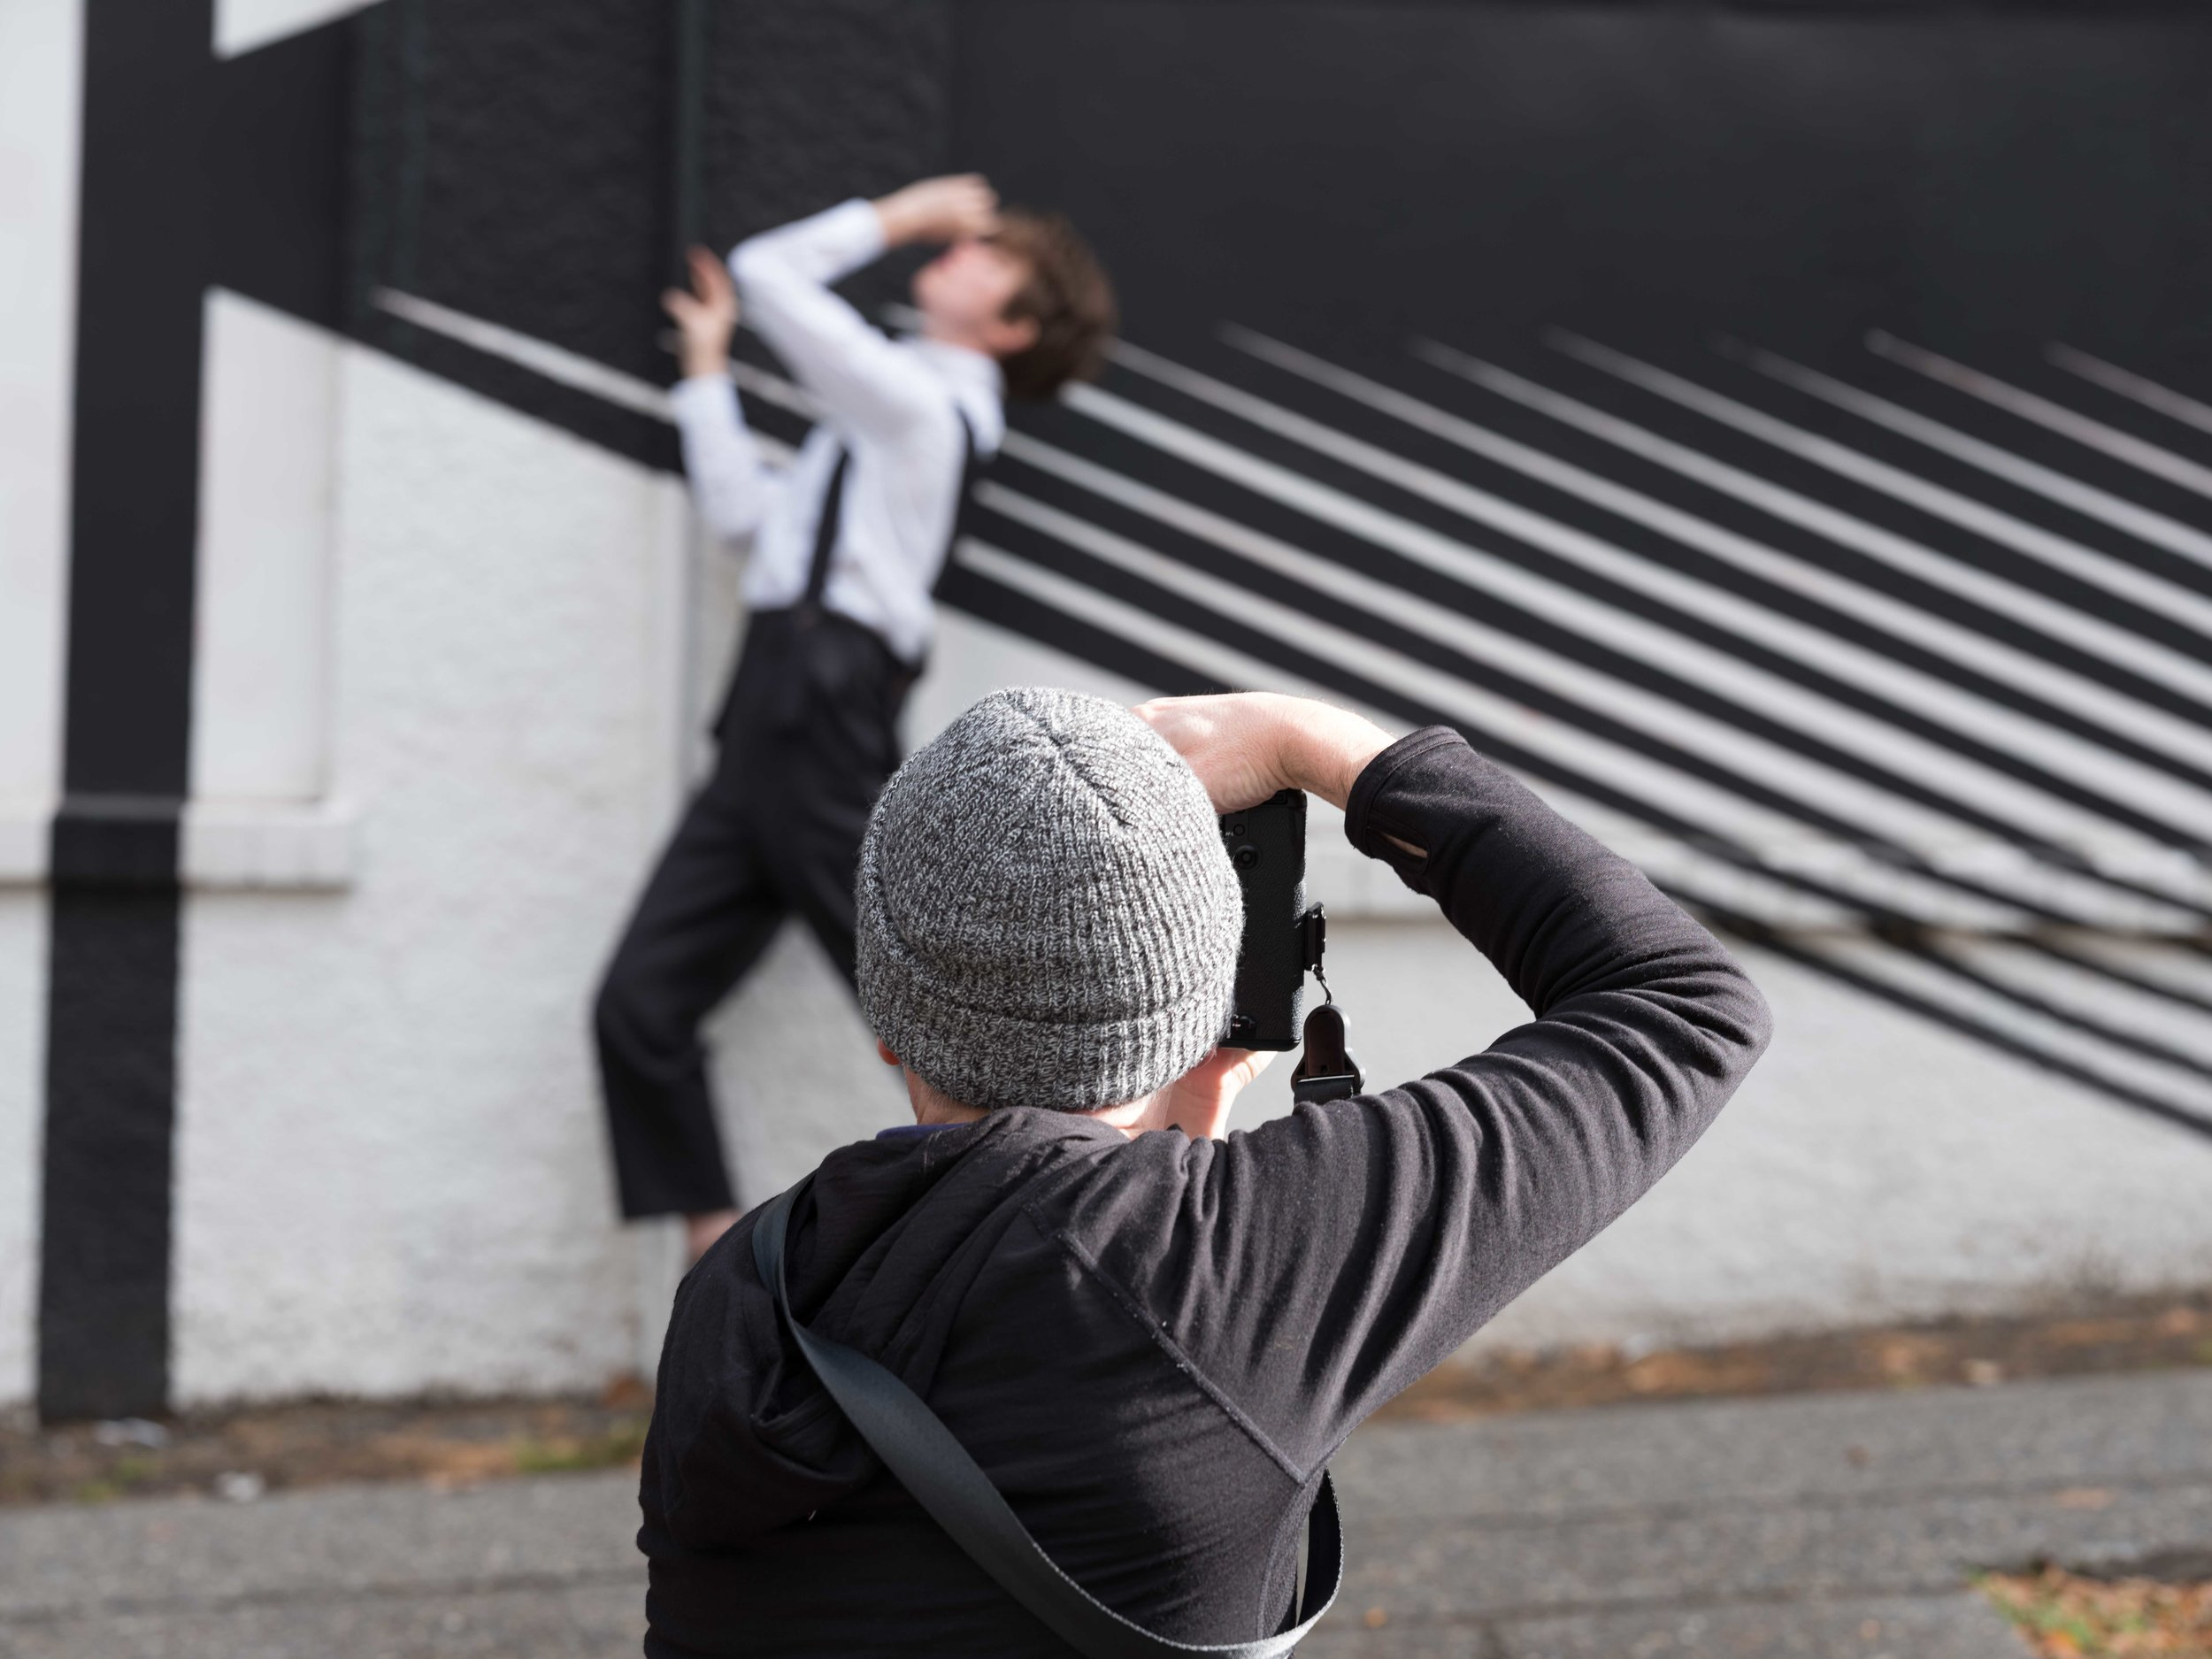 Behind the Scenes at our photoshoot with   Julia Cook  and  Brent Martin . (Note from Scott: If you're looking for a professional, smart, funny, hard-working model/writer in Seattle, look no further. If you need a stylist and fashion expert who also has a great eye for photography, contact Brent.)